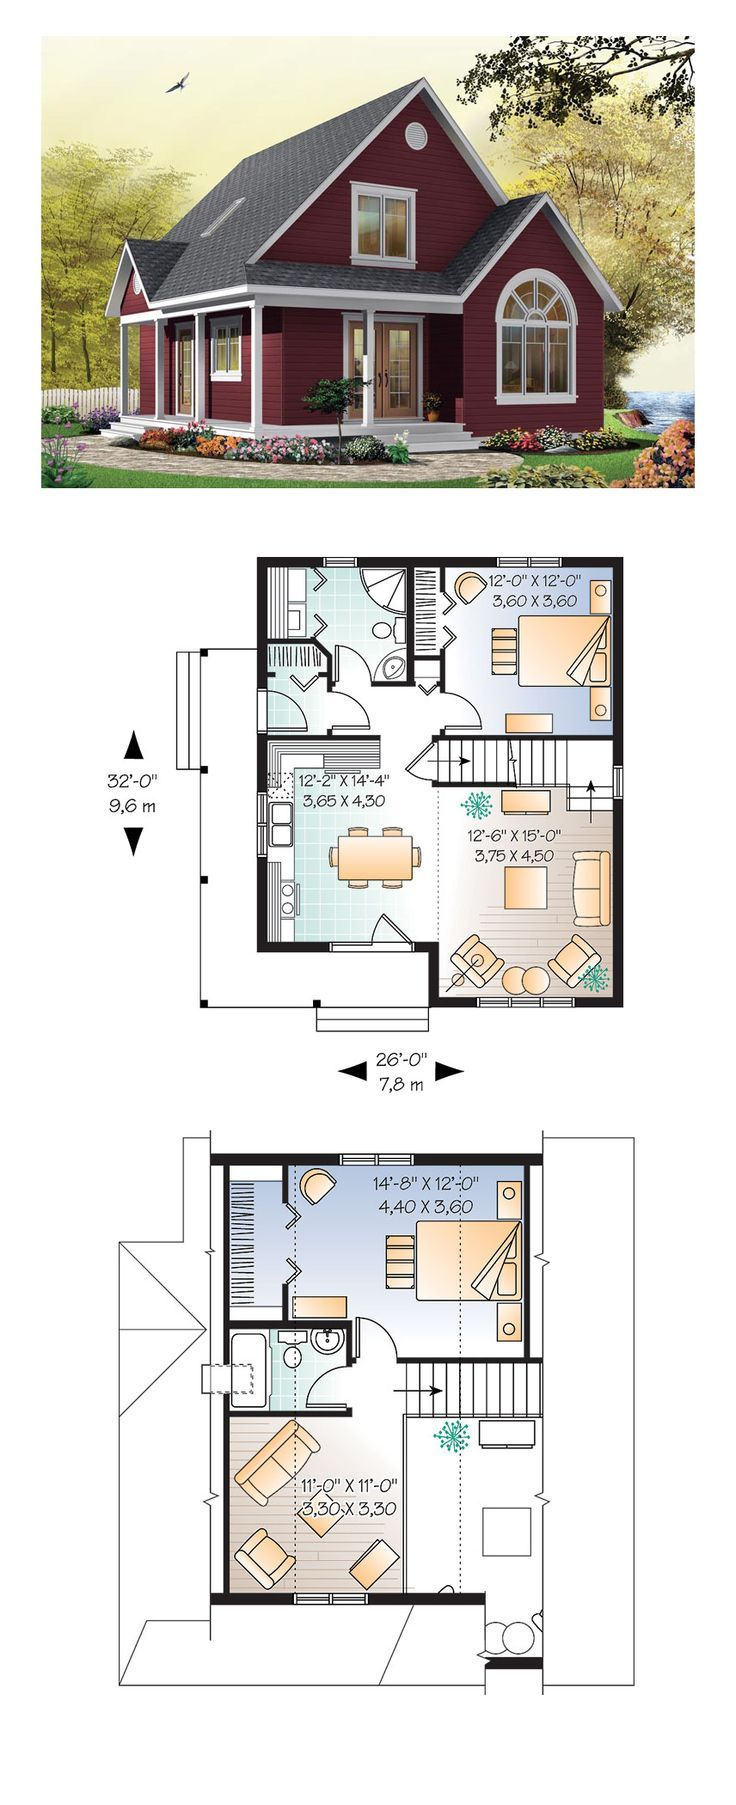 Cottage Style COOL House Plan ID: chp-28554   Total Living Area: 1226 sq. ft., 2 bedrooms and 2 bathrooms. #cottageplan